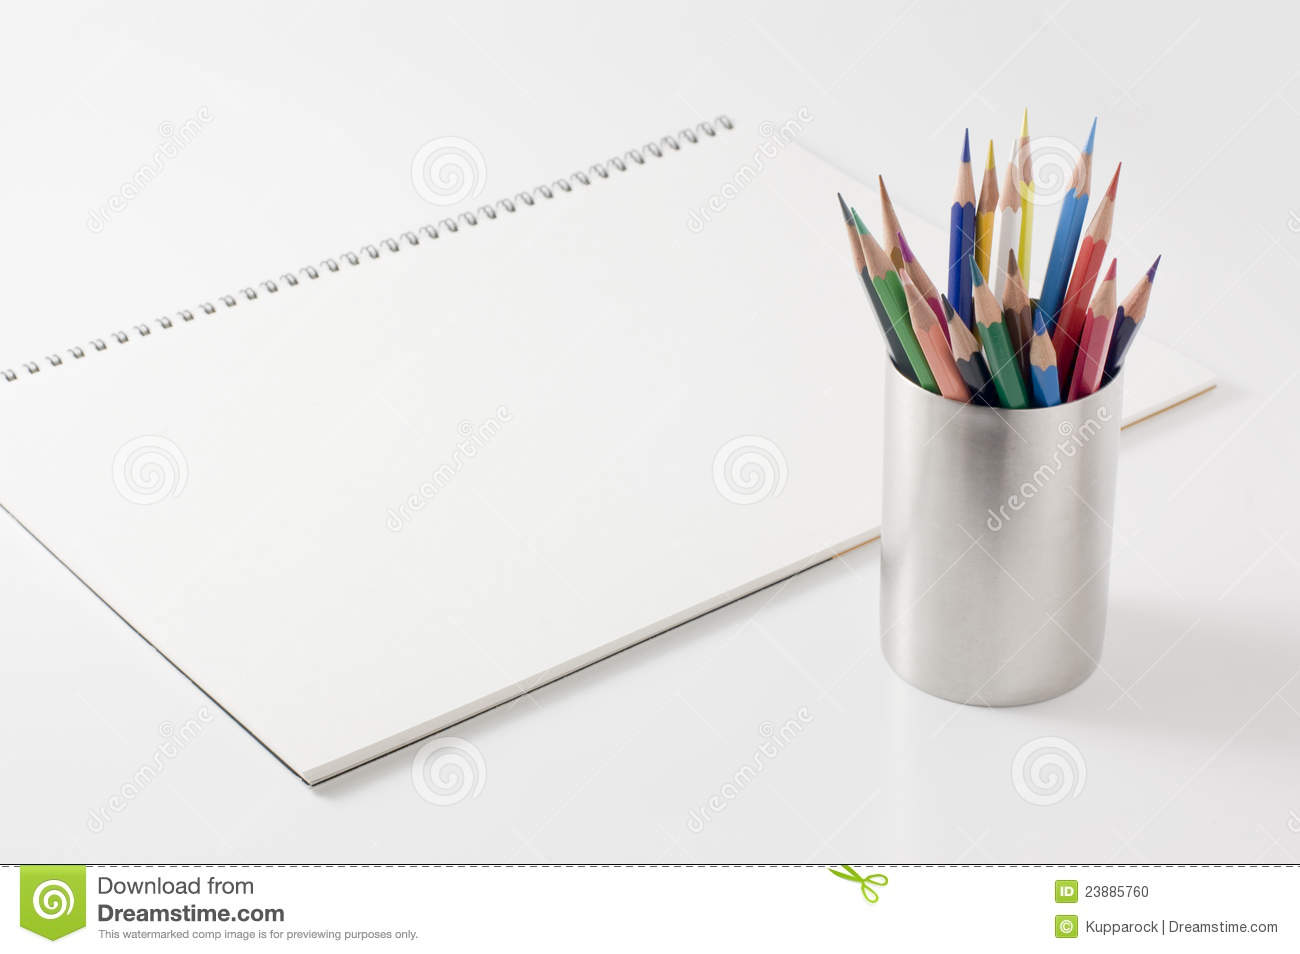 Blank sketchbook and pencils